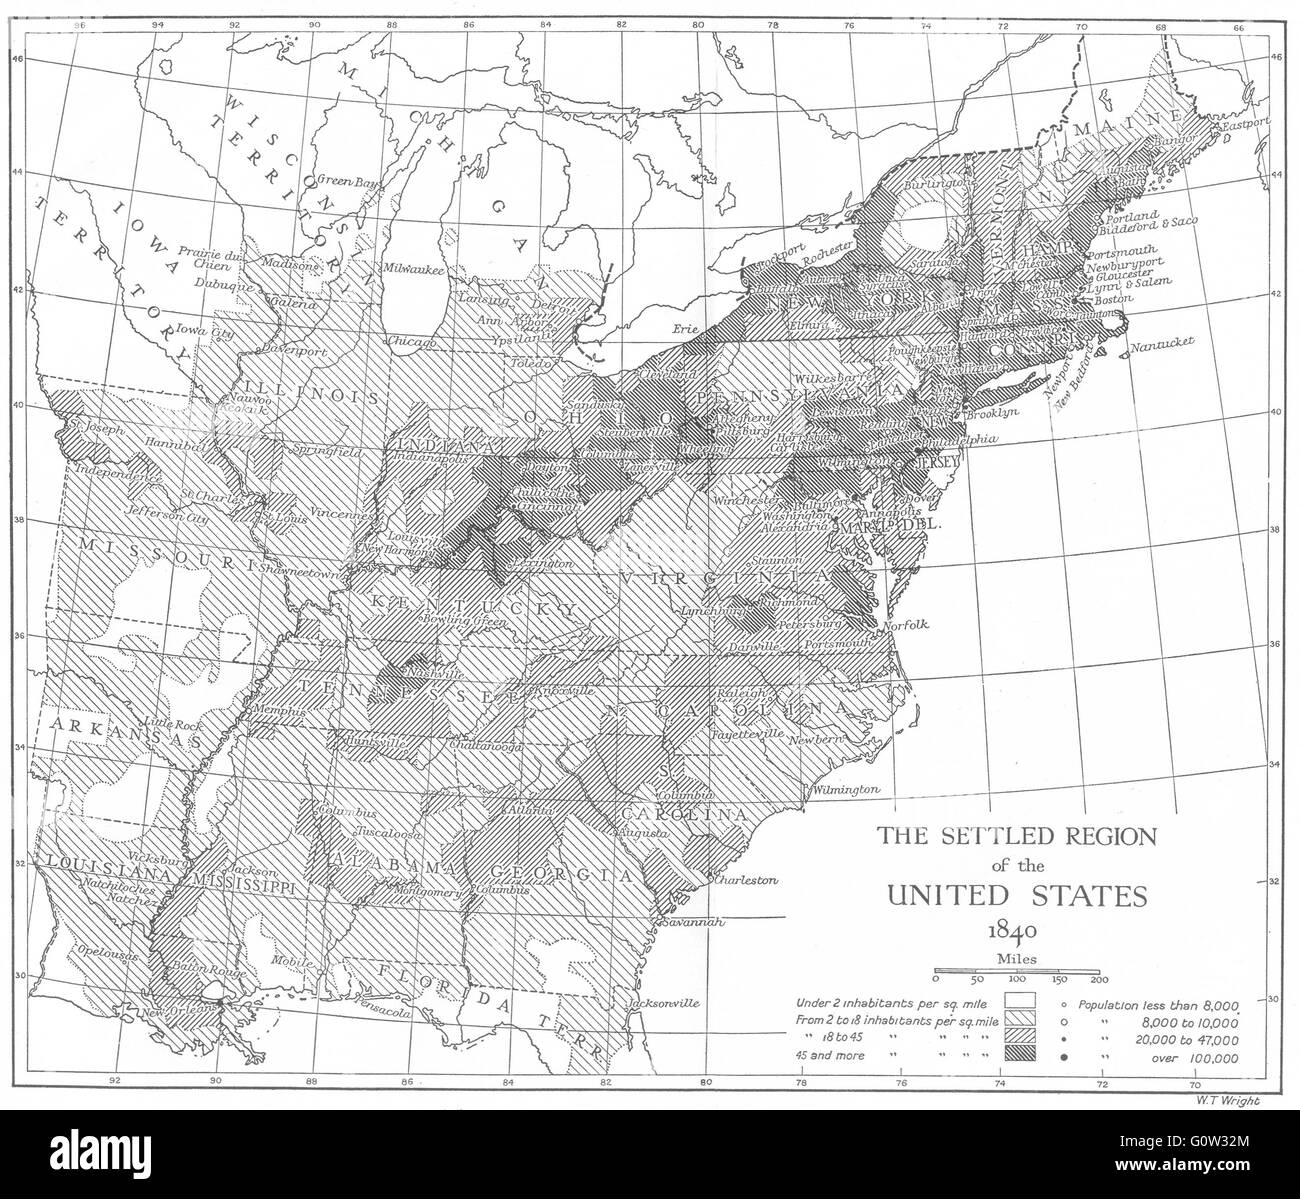 USA Northern States Settled Region Of US - Map of the us in 1840